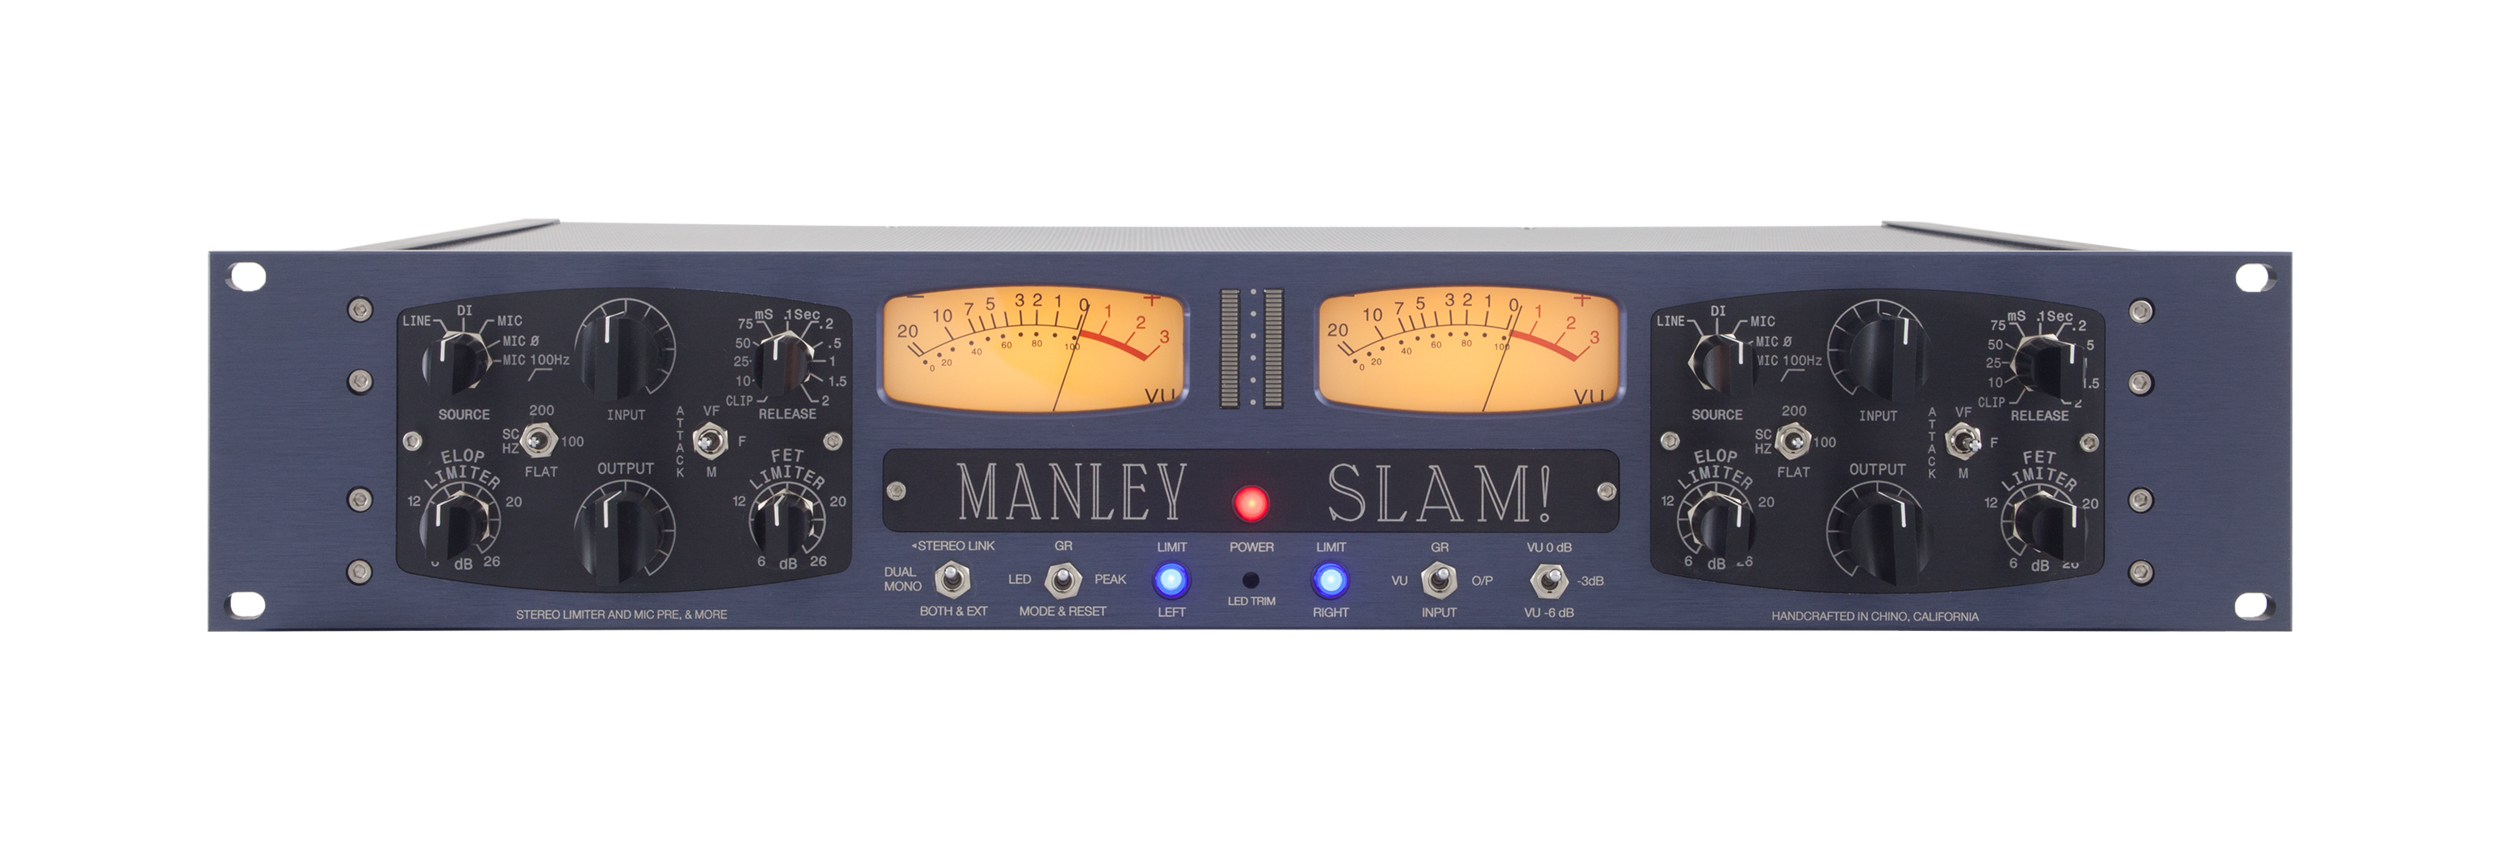 MANLEY SLAM Stereo Limiter and Mic PreAmp